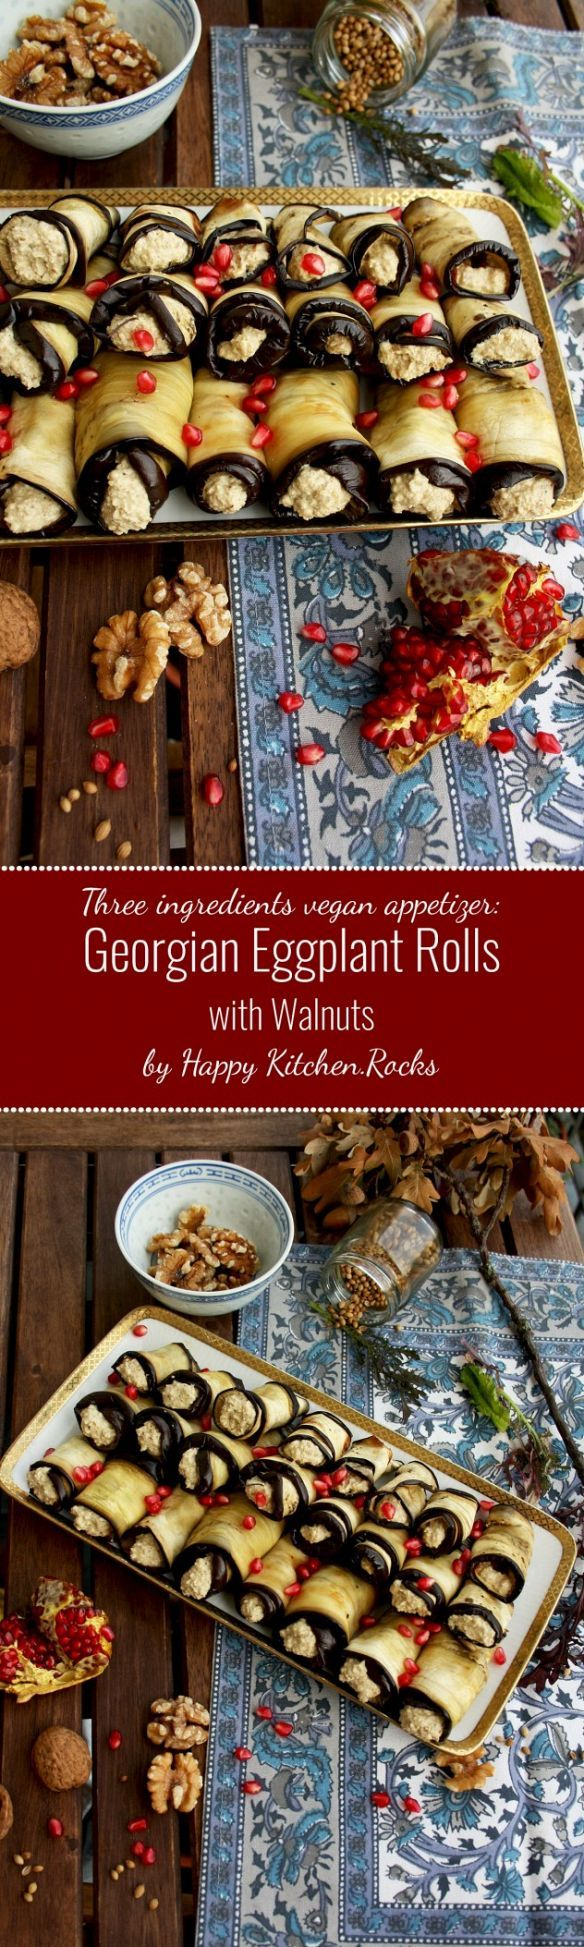 Easy and healthy vegan appetizer: Georgian Eggplant Rolls with Walnut Filling. You only need three ingredients and a bit of spices to make it! Great idea for party finger food.